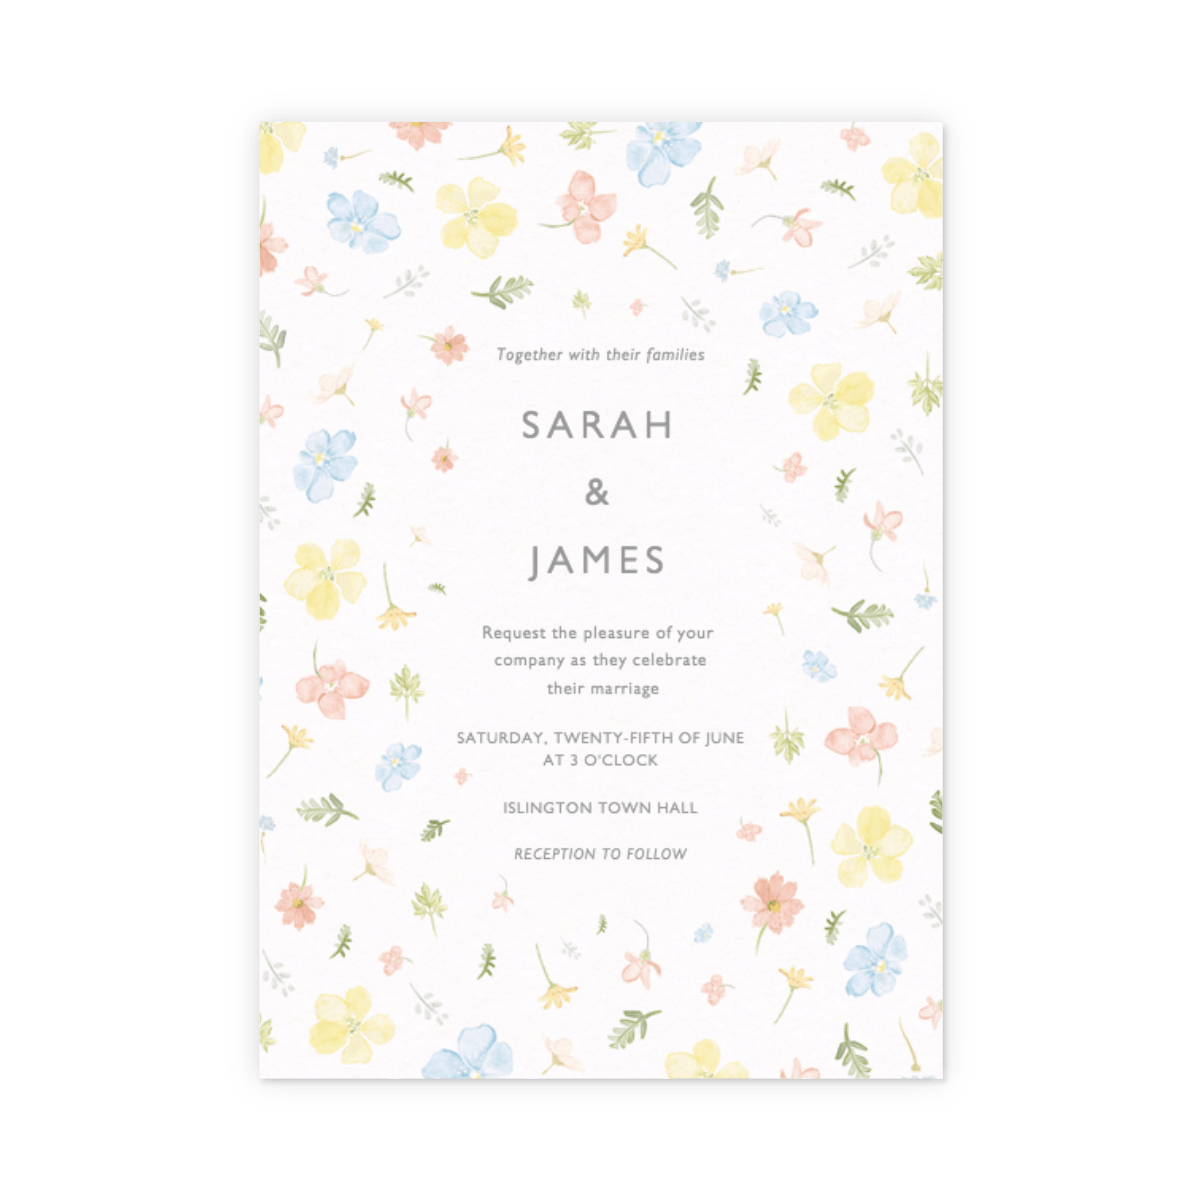 Https%3a%2f%2fwww.papier.com%2fproduct image%2f572%2f4%2fpetite floral 153 front 1453909370.png?ixlib=rb 1.1